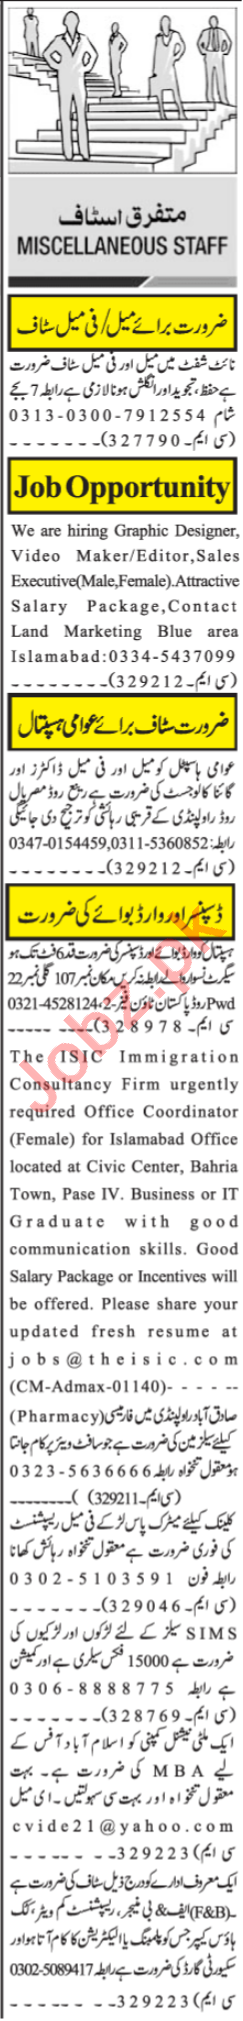 Graphic Designer & Video Editor Jobs 2021 in Islamabad